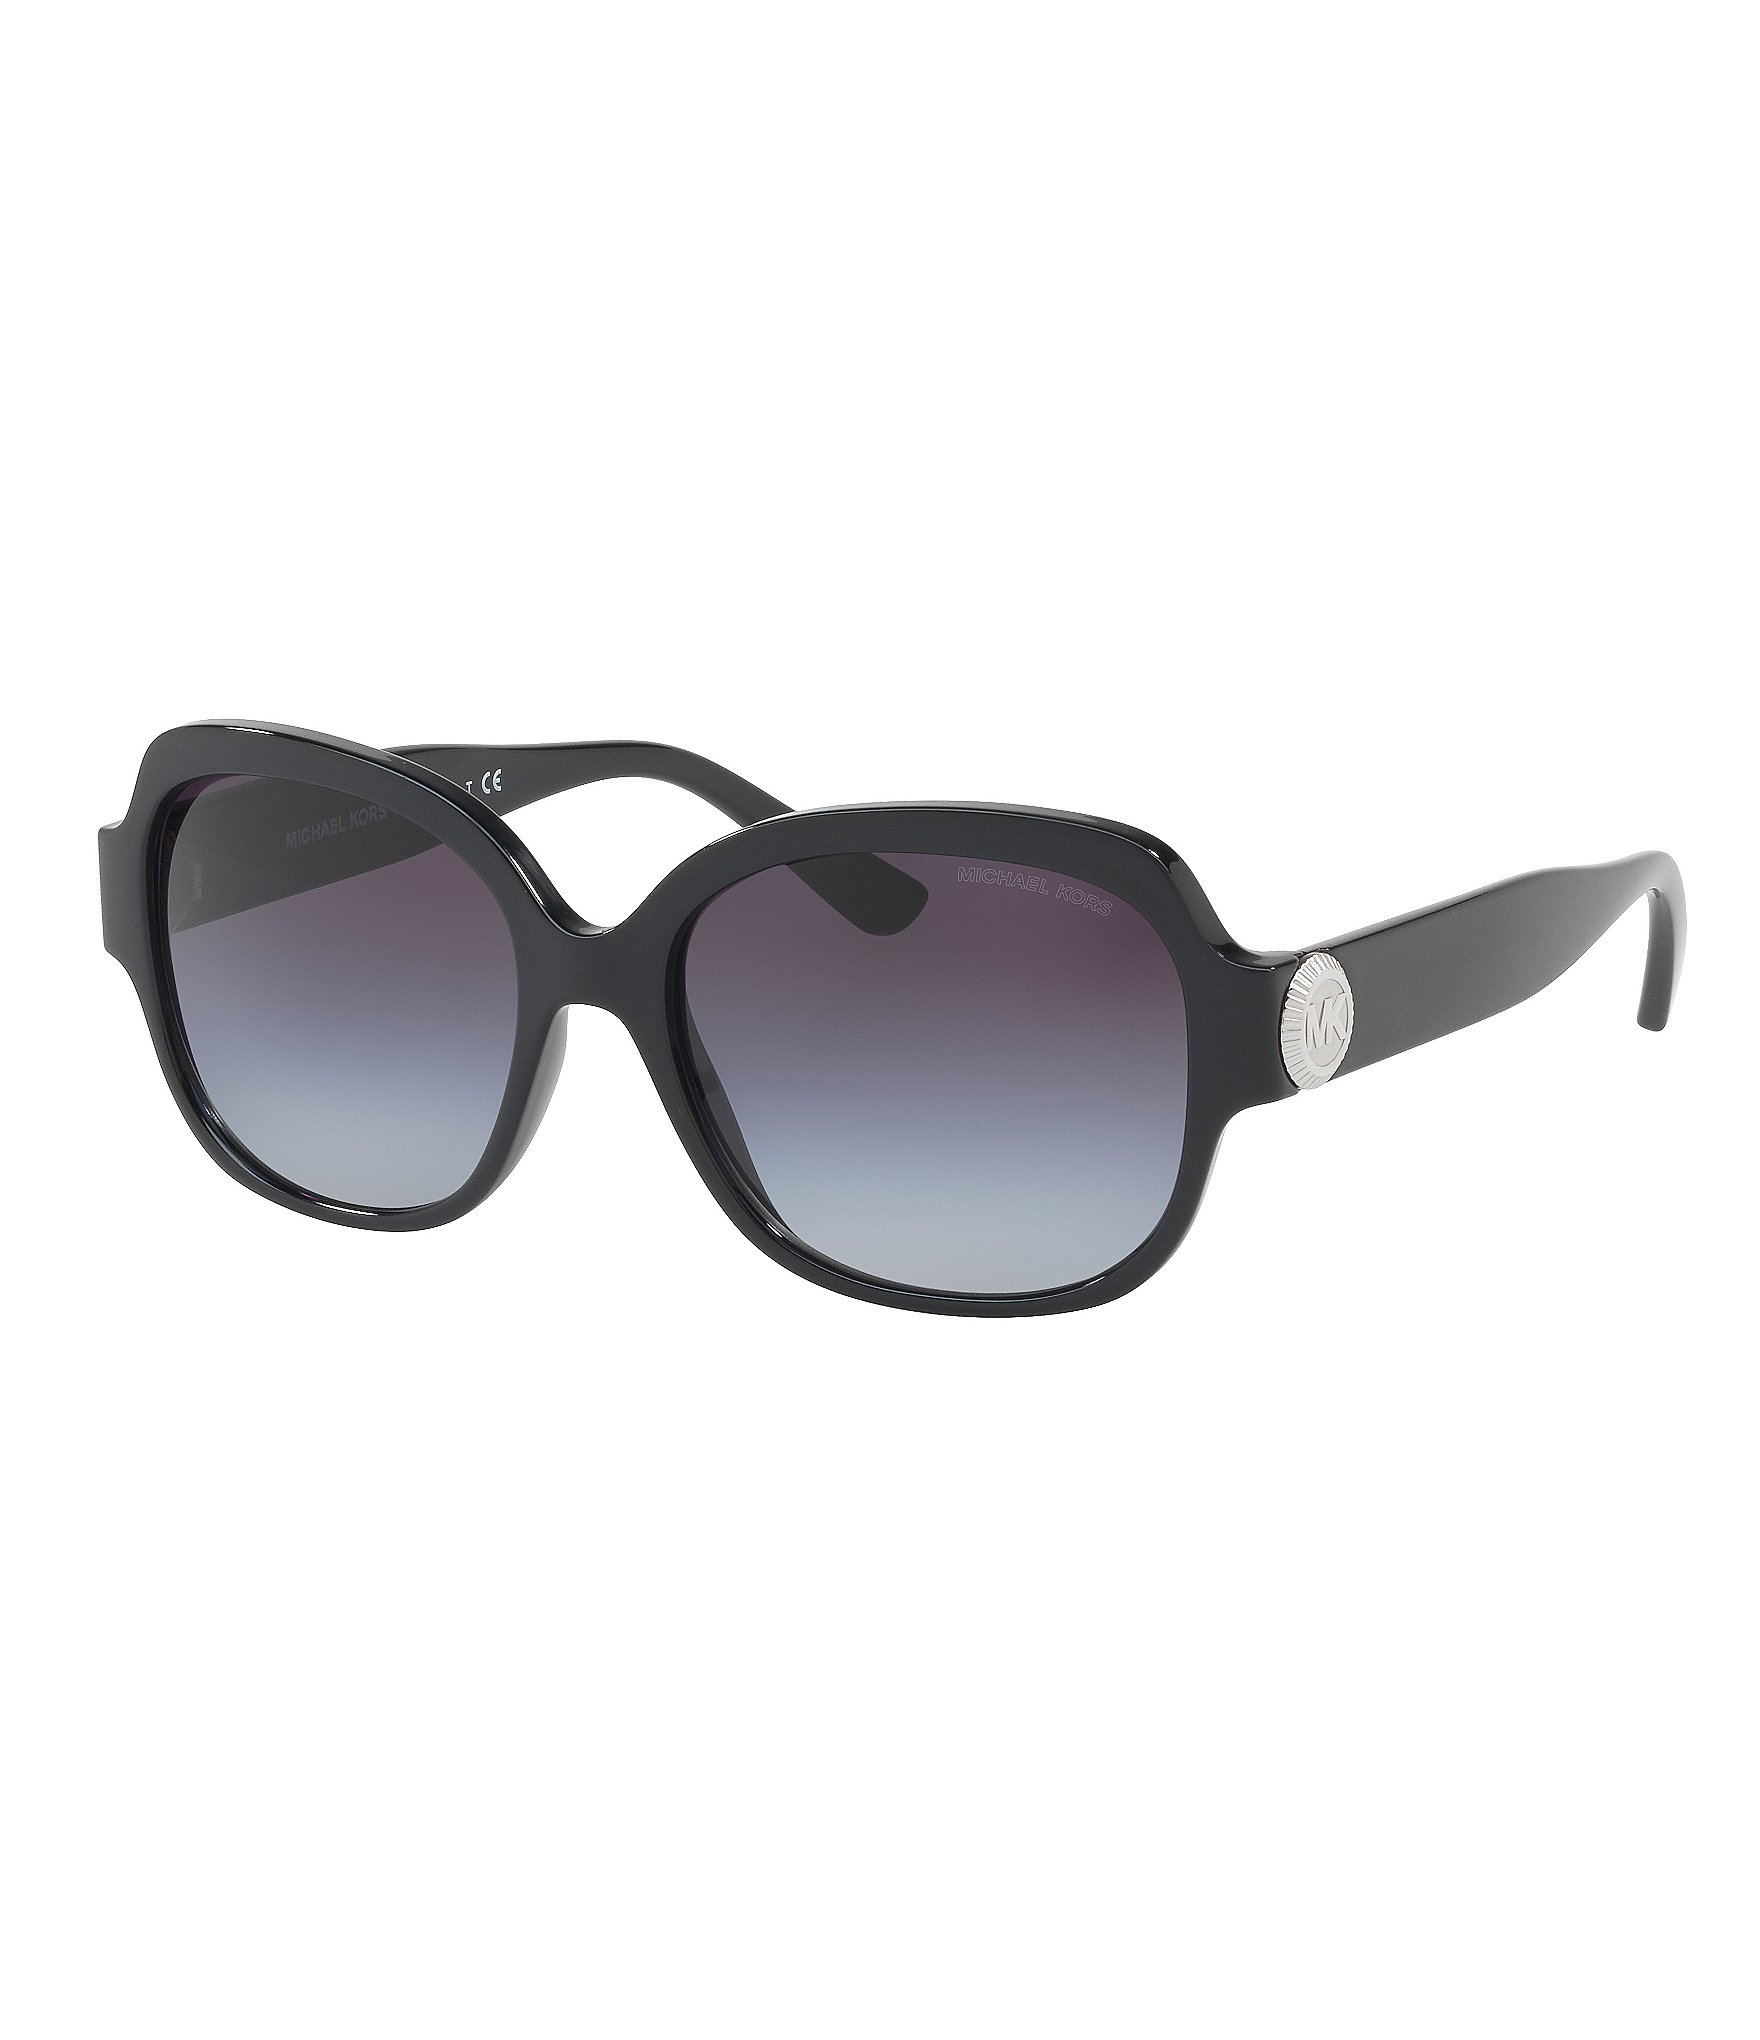 74aaffaaece Michael Kors Women s Square Sunglasses